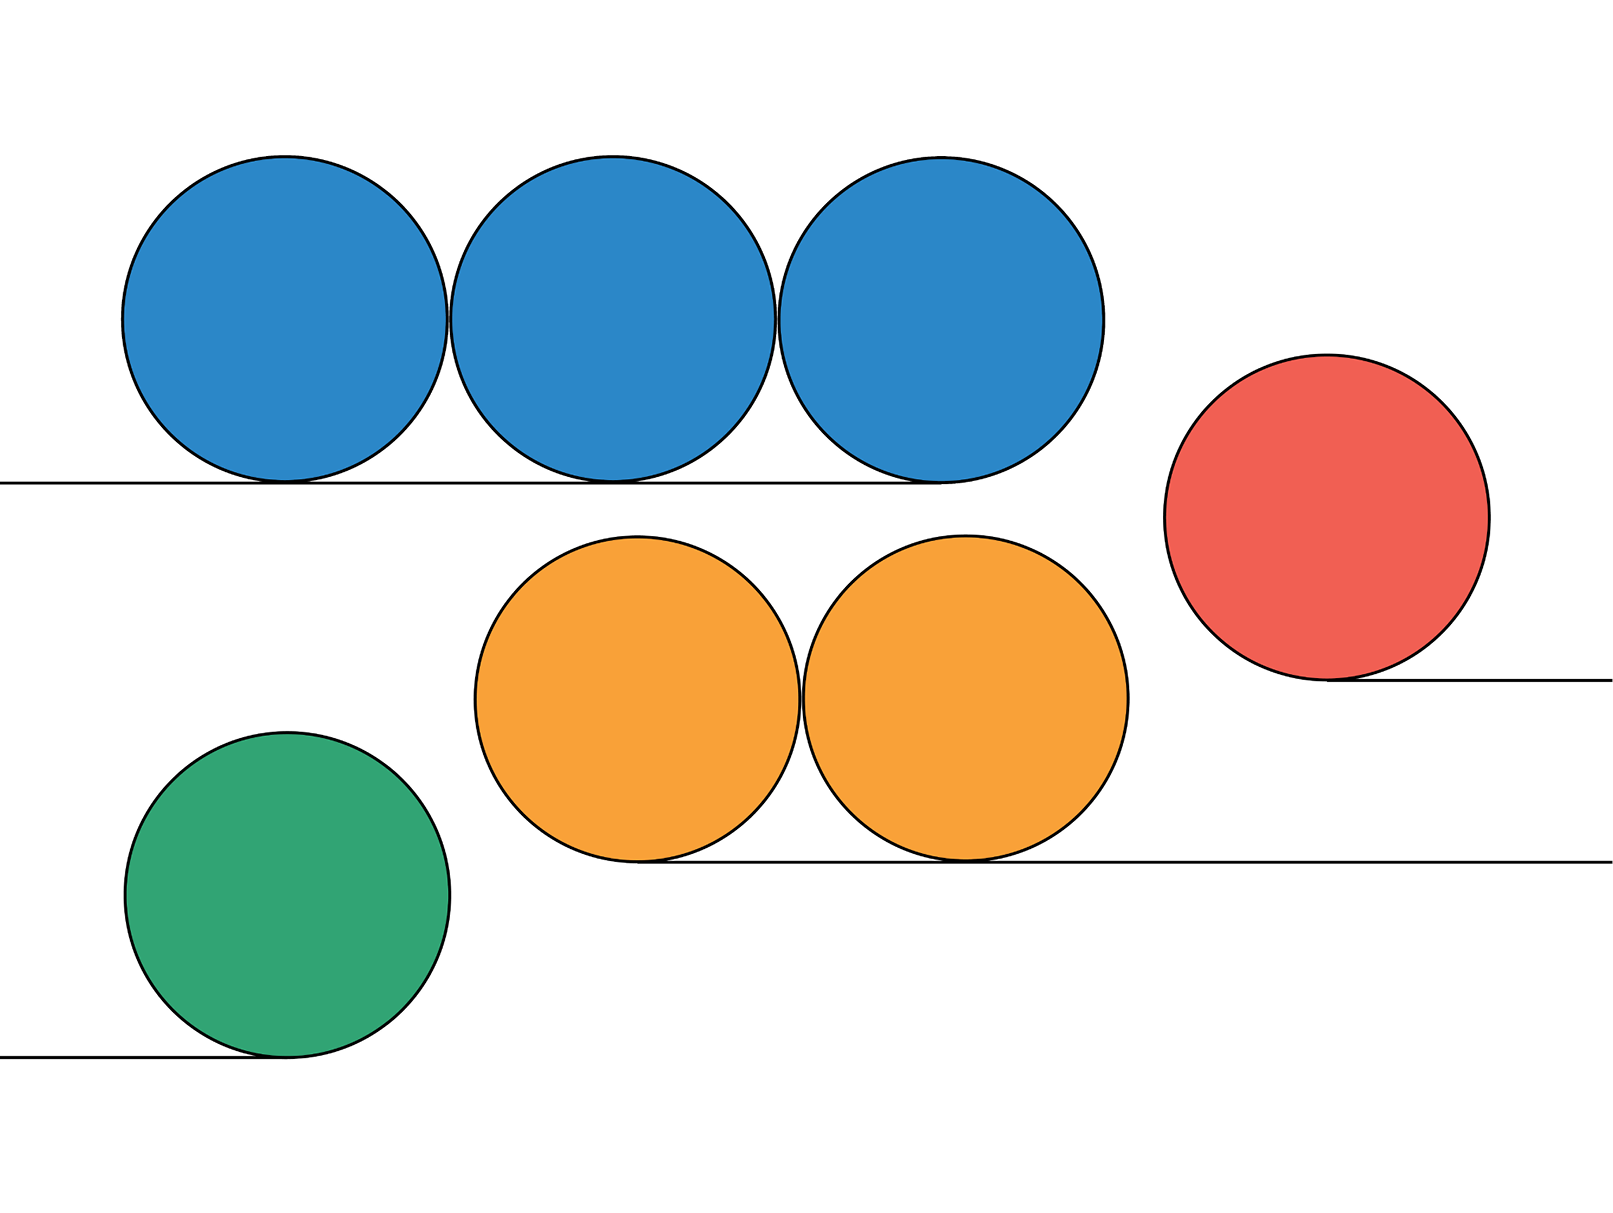 An abstract image featuring brightly colored circles each with a line running under the circles and curving around the edge of the innermost circle. There are three blue circles at the top of the image, there is one red circle on the right side, there are two orange circles in the center under the blue circles and there is one green circle below the blue and orange circles to the left.